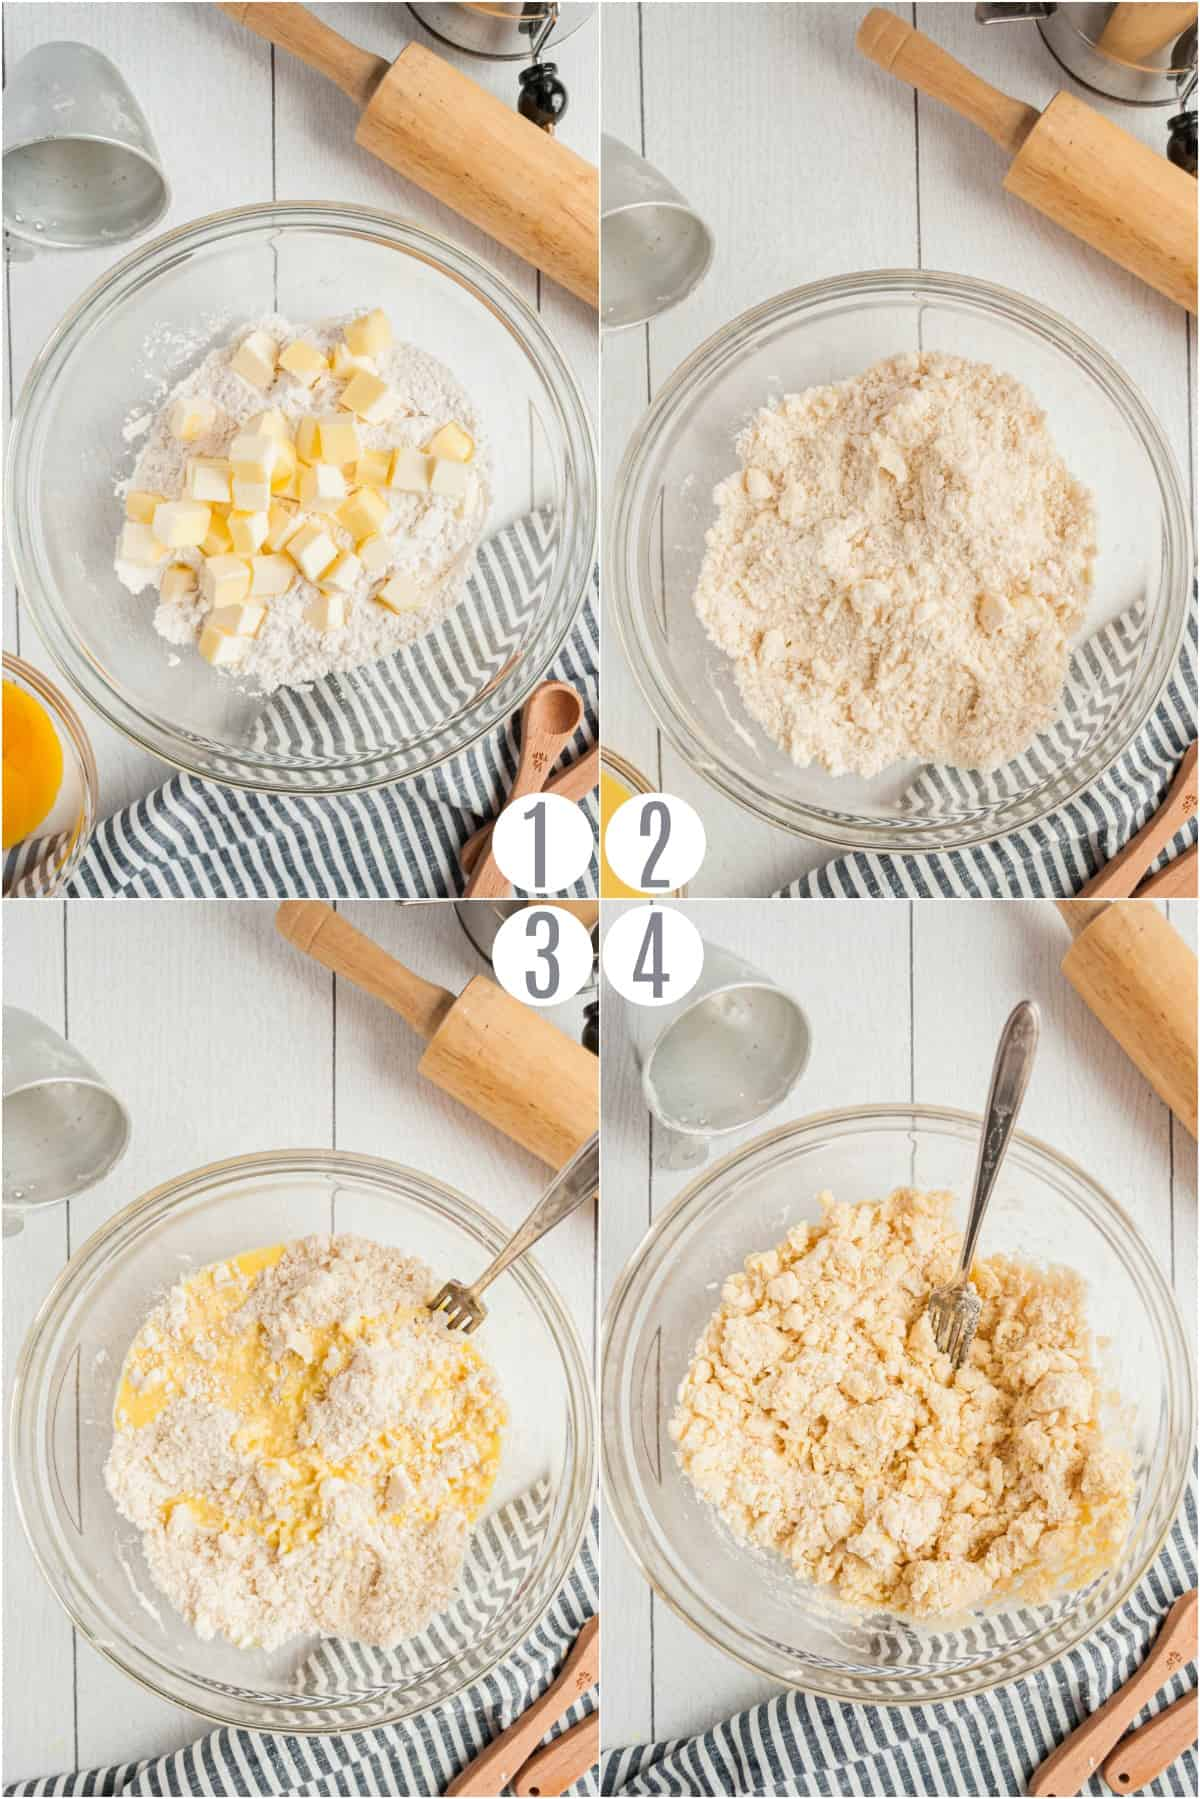 Step by step photos showing how to make homemade pie crust.